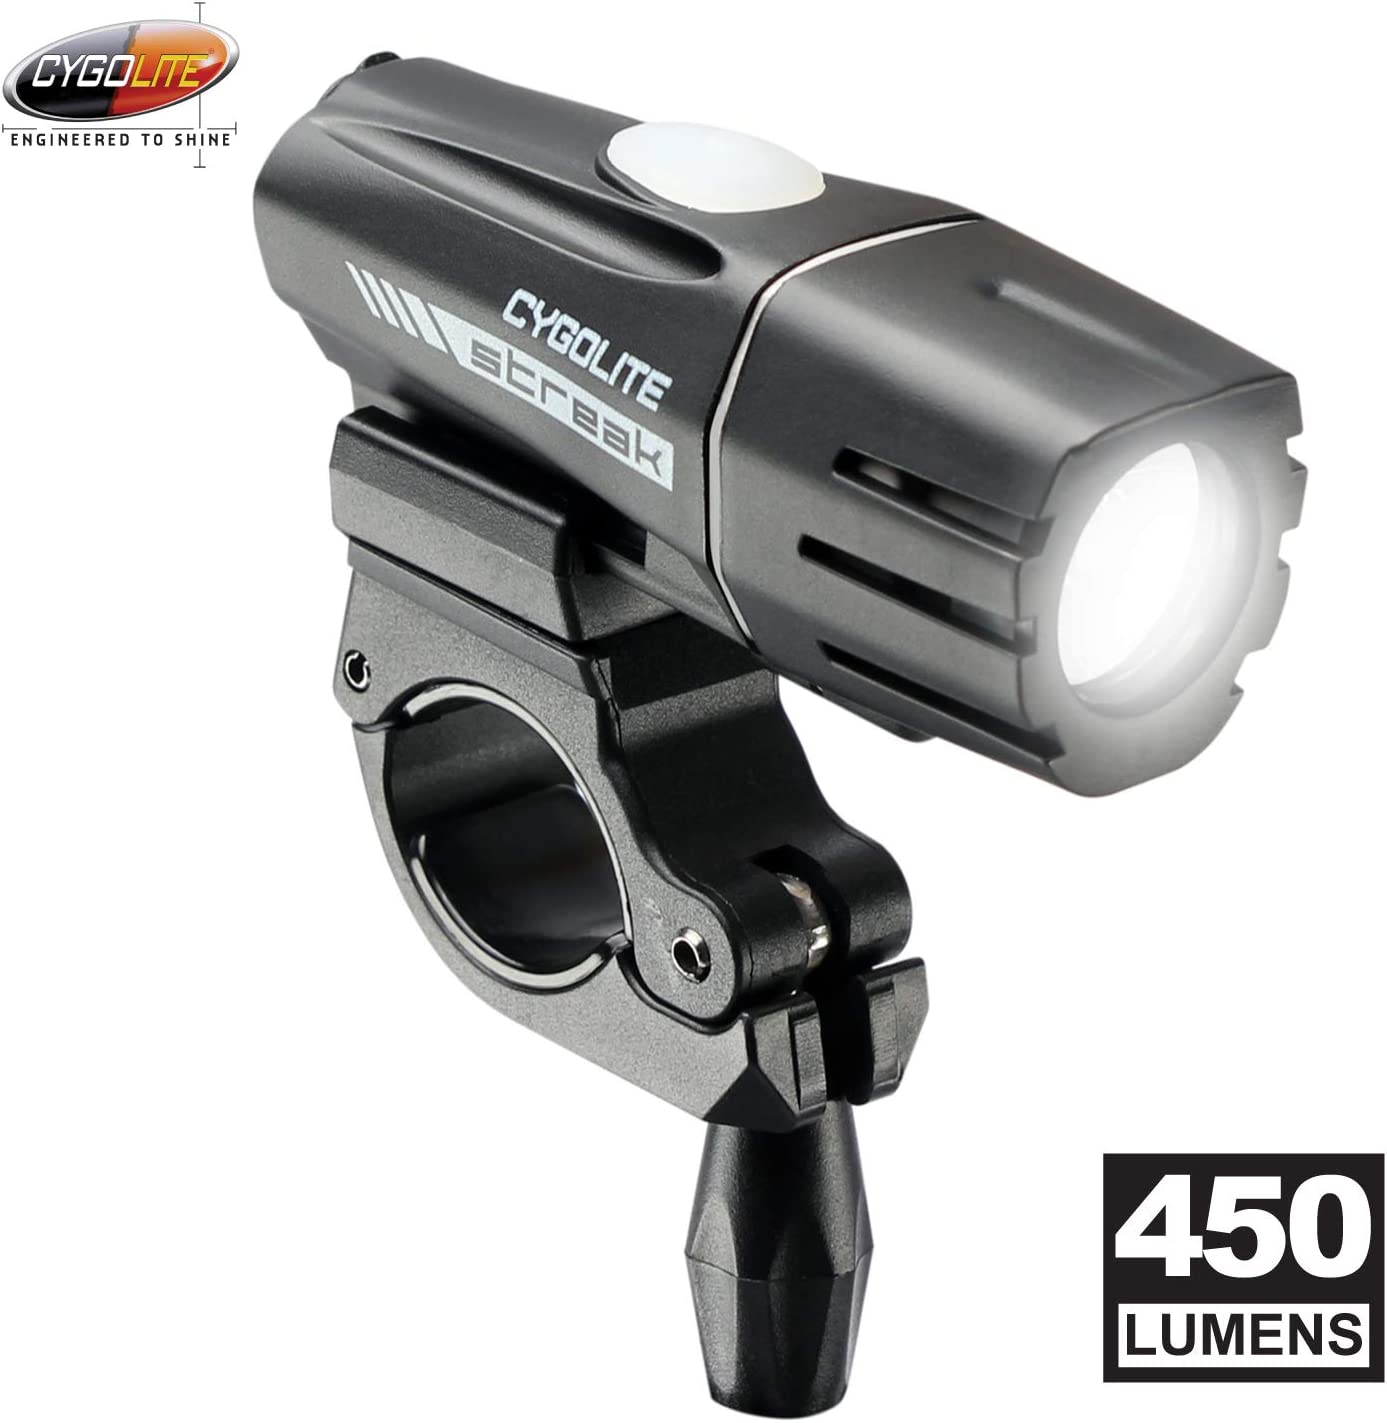 MinChen High Power LED Bike Light Bike Front Headlight 1200Lumens LED Bike Light 6 Modes with Built- in Rechargeable Battery USB Cable Included